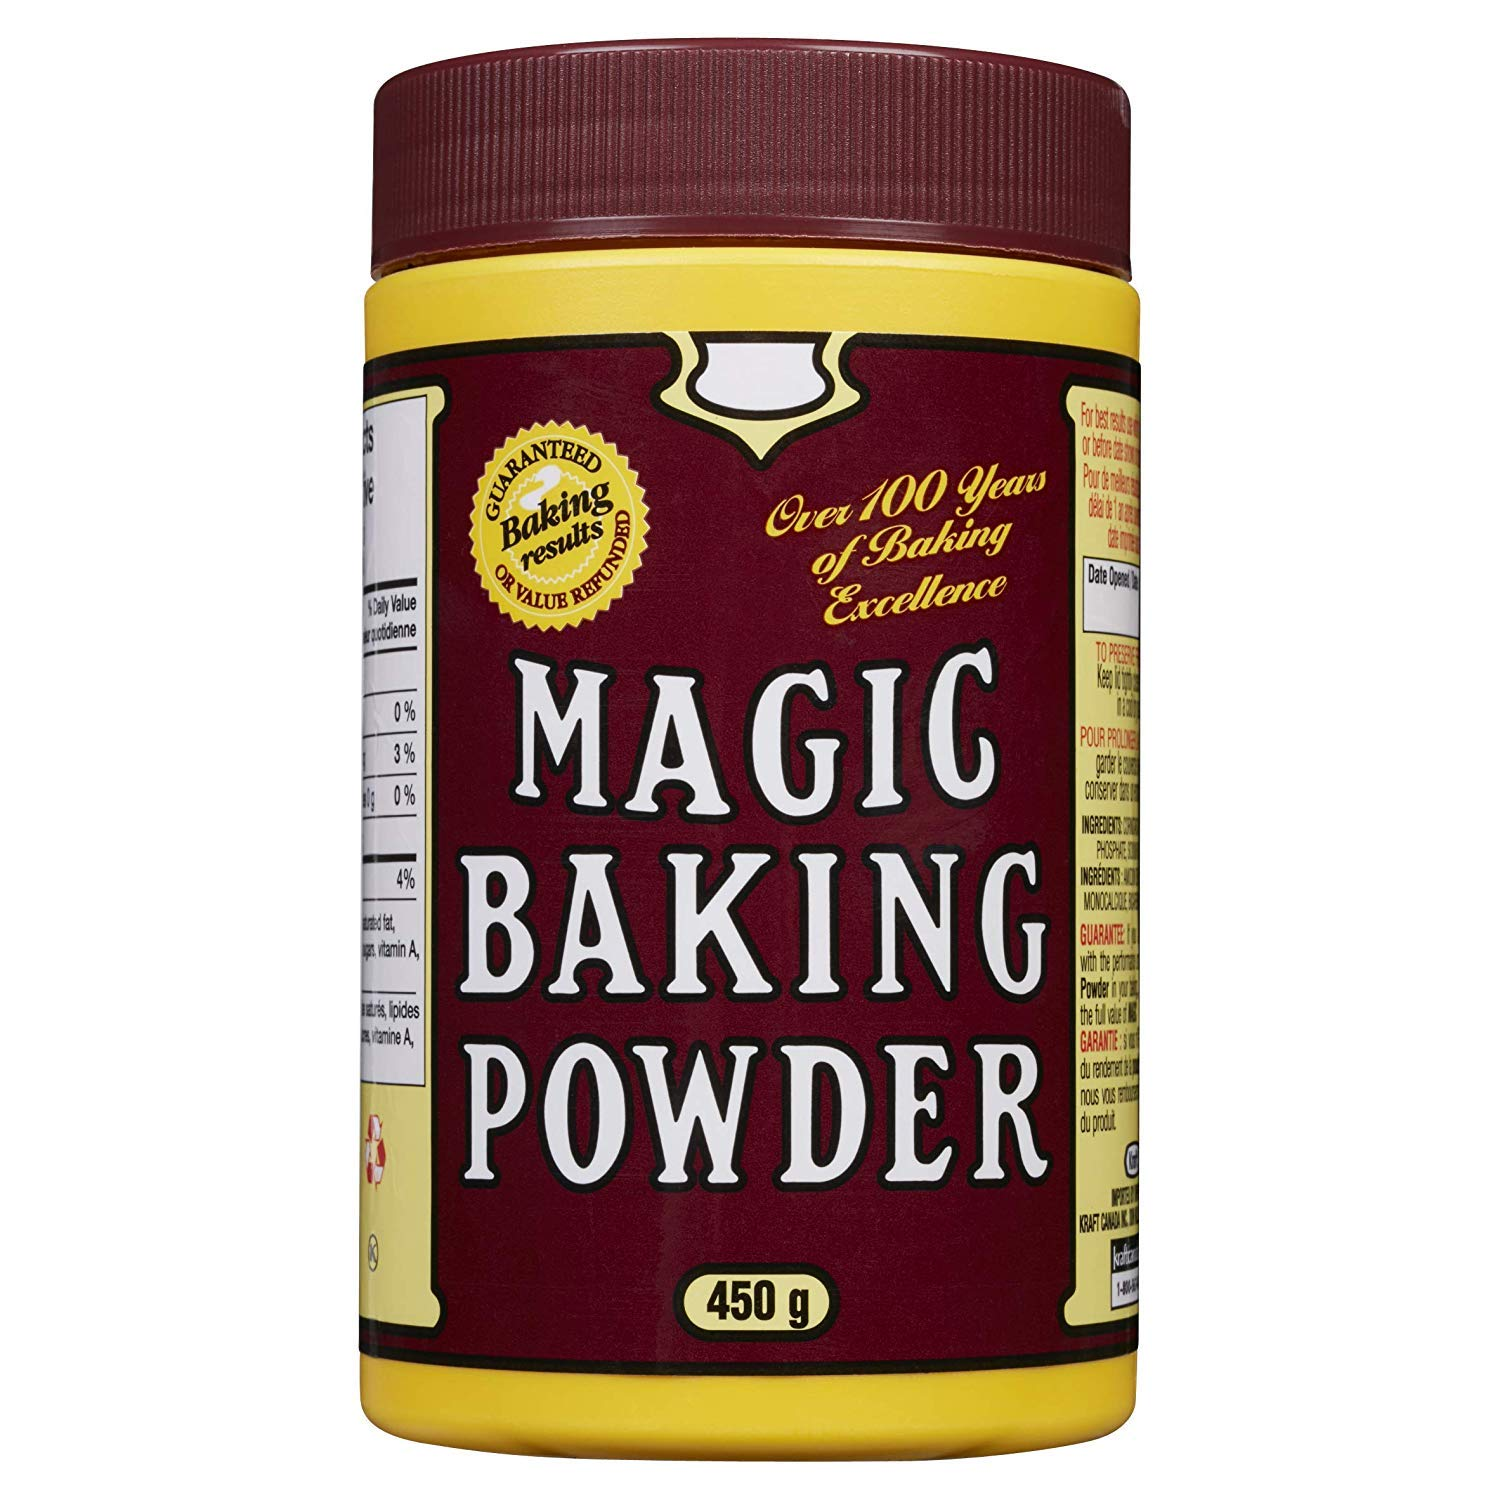 MAGIC Magic Baking Powder, 450g/15.9oz. Tin, 24ct, (Imported from Canada)